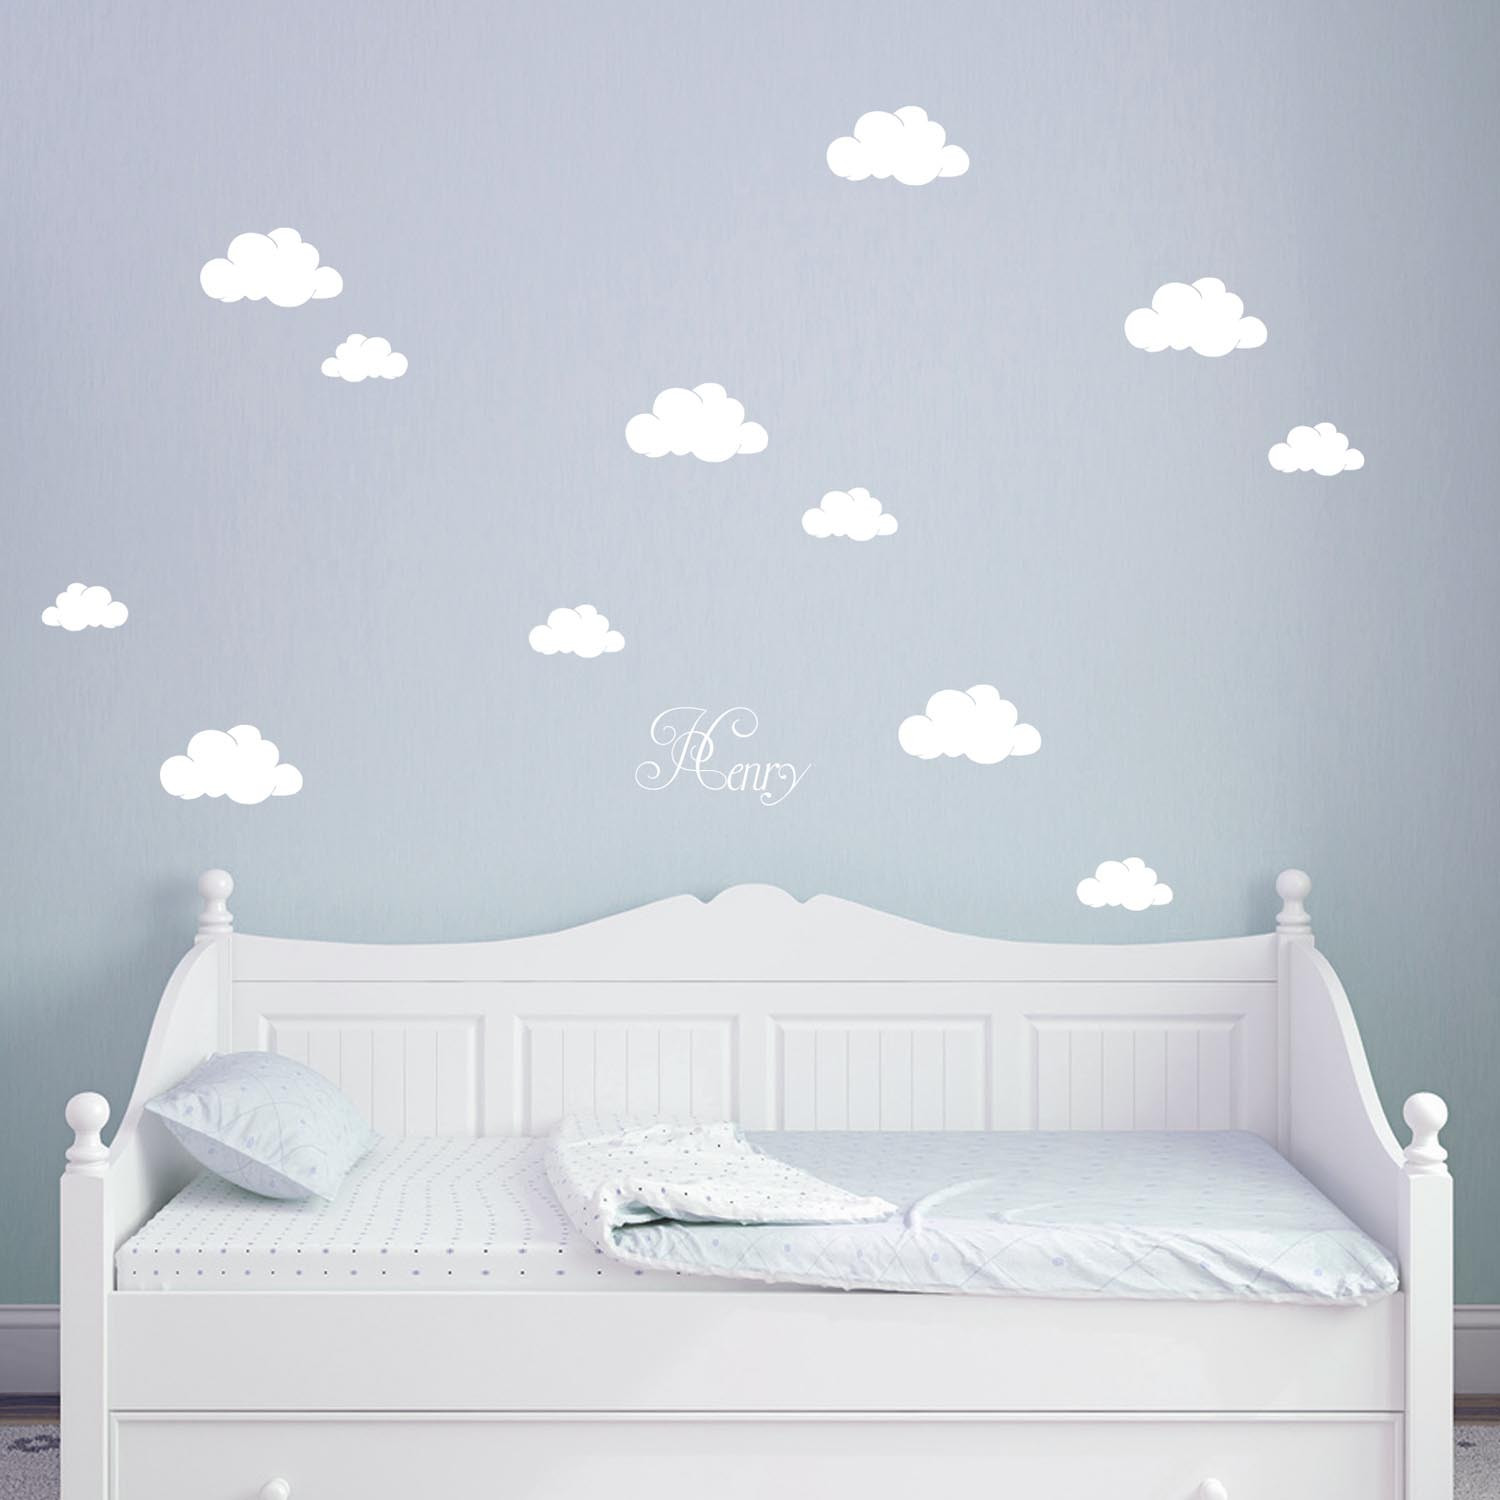 wandtattoo wolken himmel w lkchen mit namen m1682. Black Bedroom Furniture Sets. Home Design Ideas